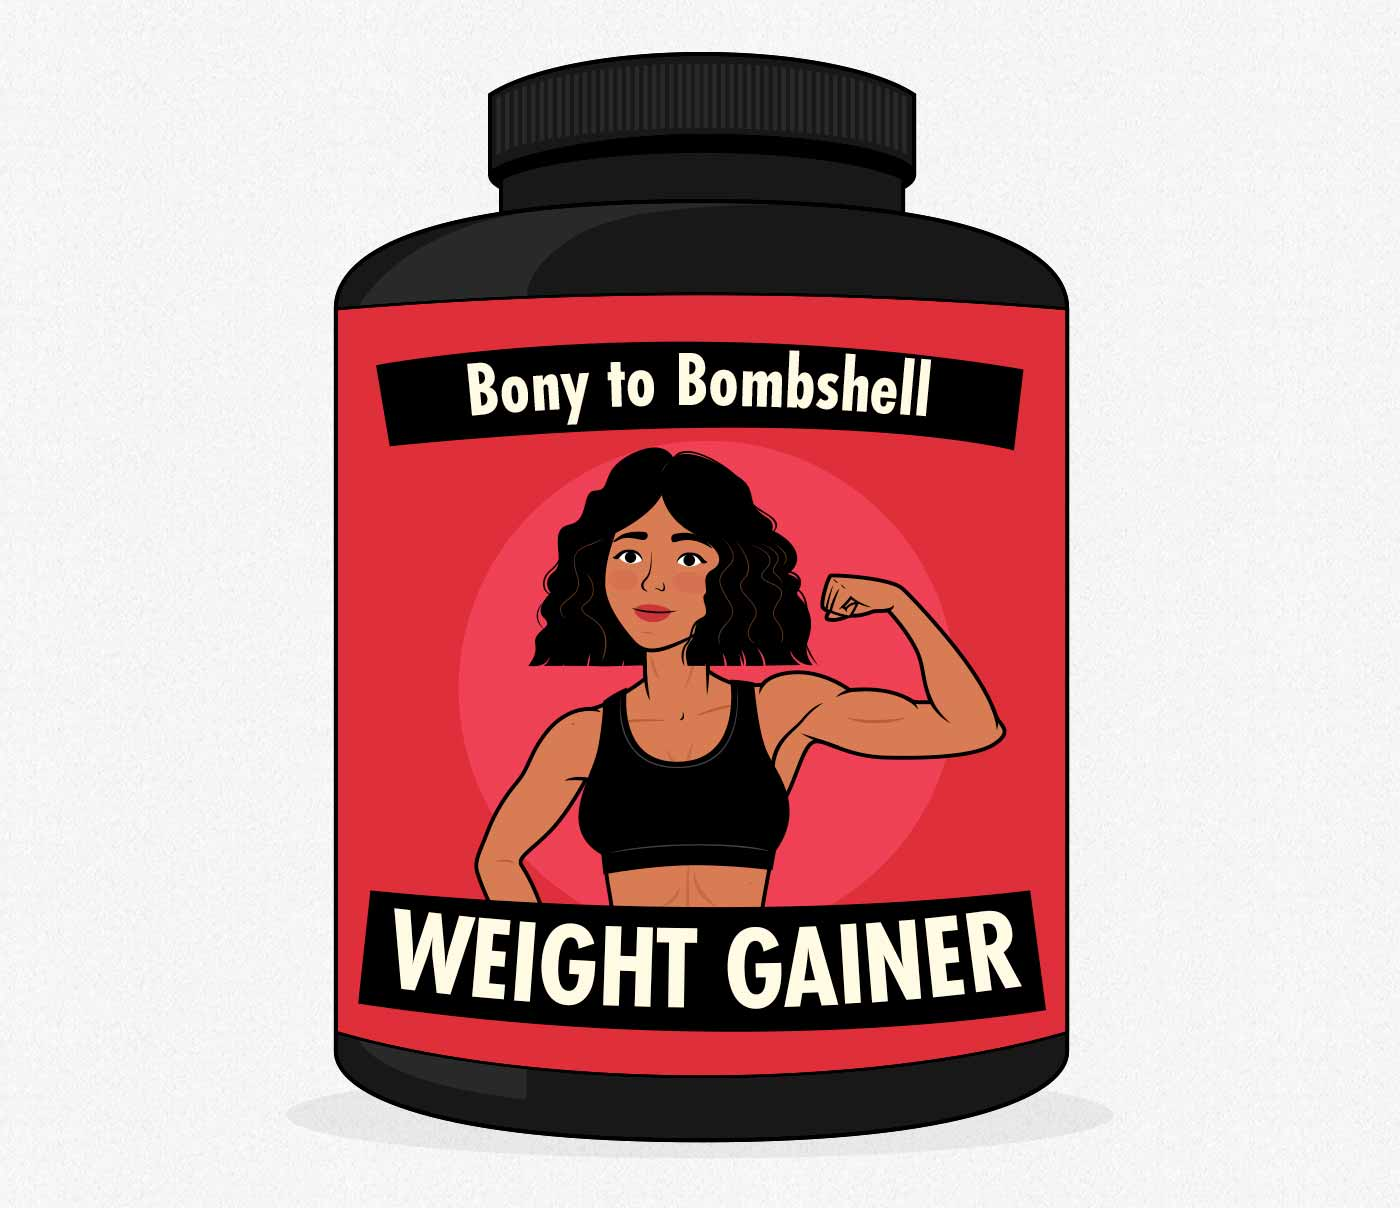 Illustration of a weight gainer supplement for women.